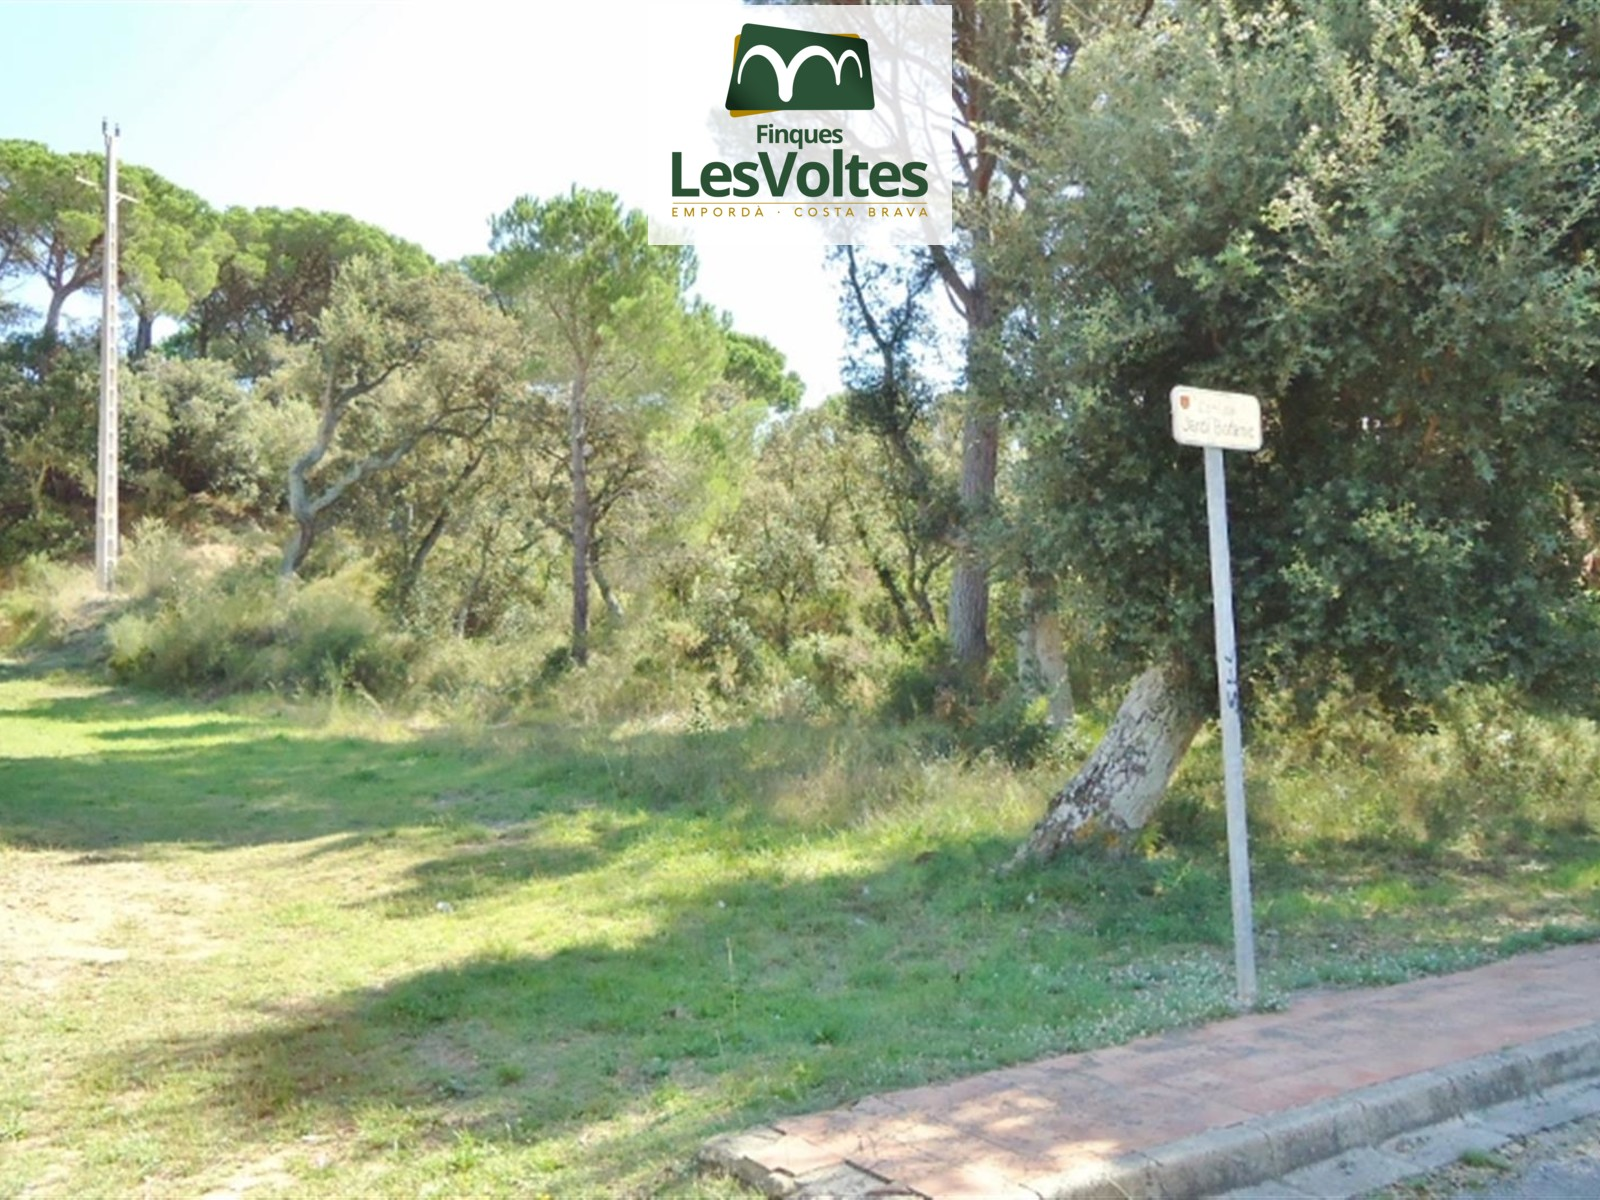 PLOT FOR SALE IN CALELLA DE PALAFRUGELL OF 1,857 M2 TO BUILD A SINGLE-FAMILY HOUSE.